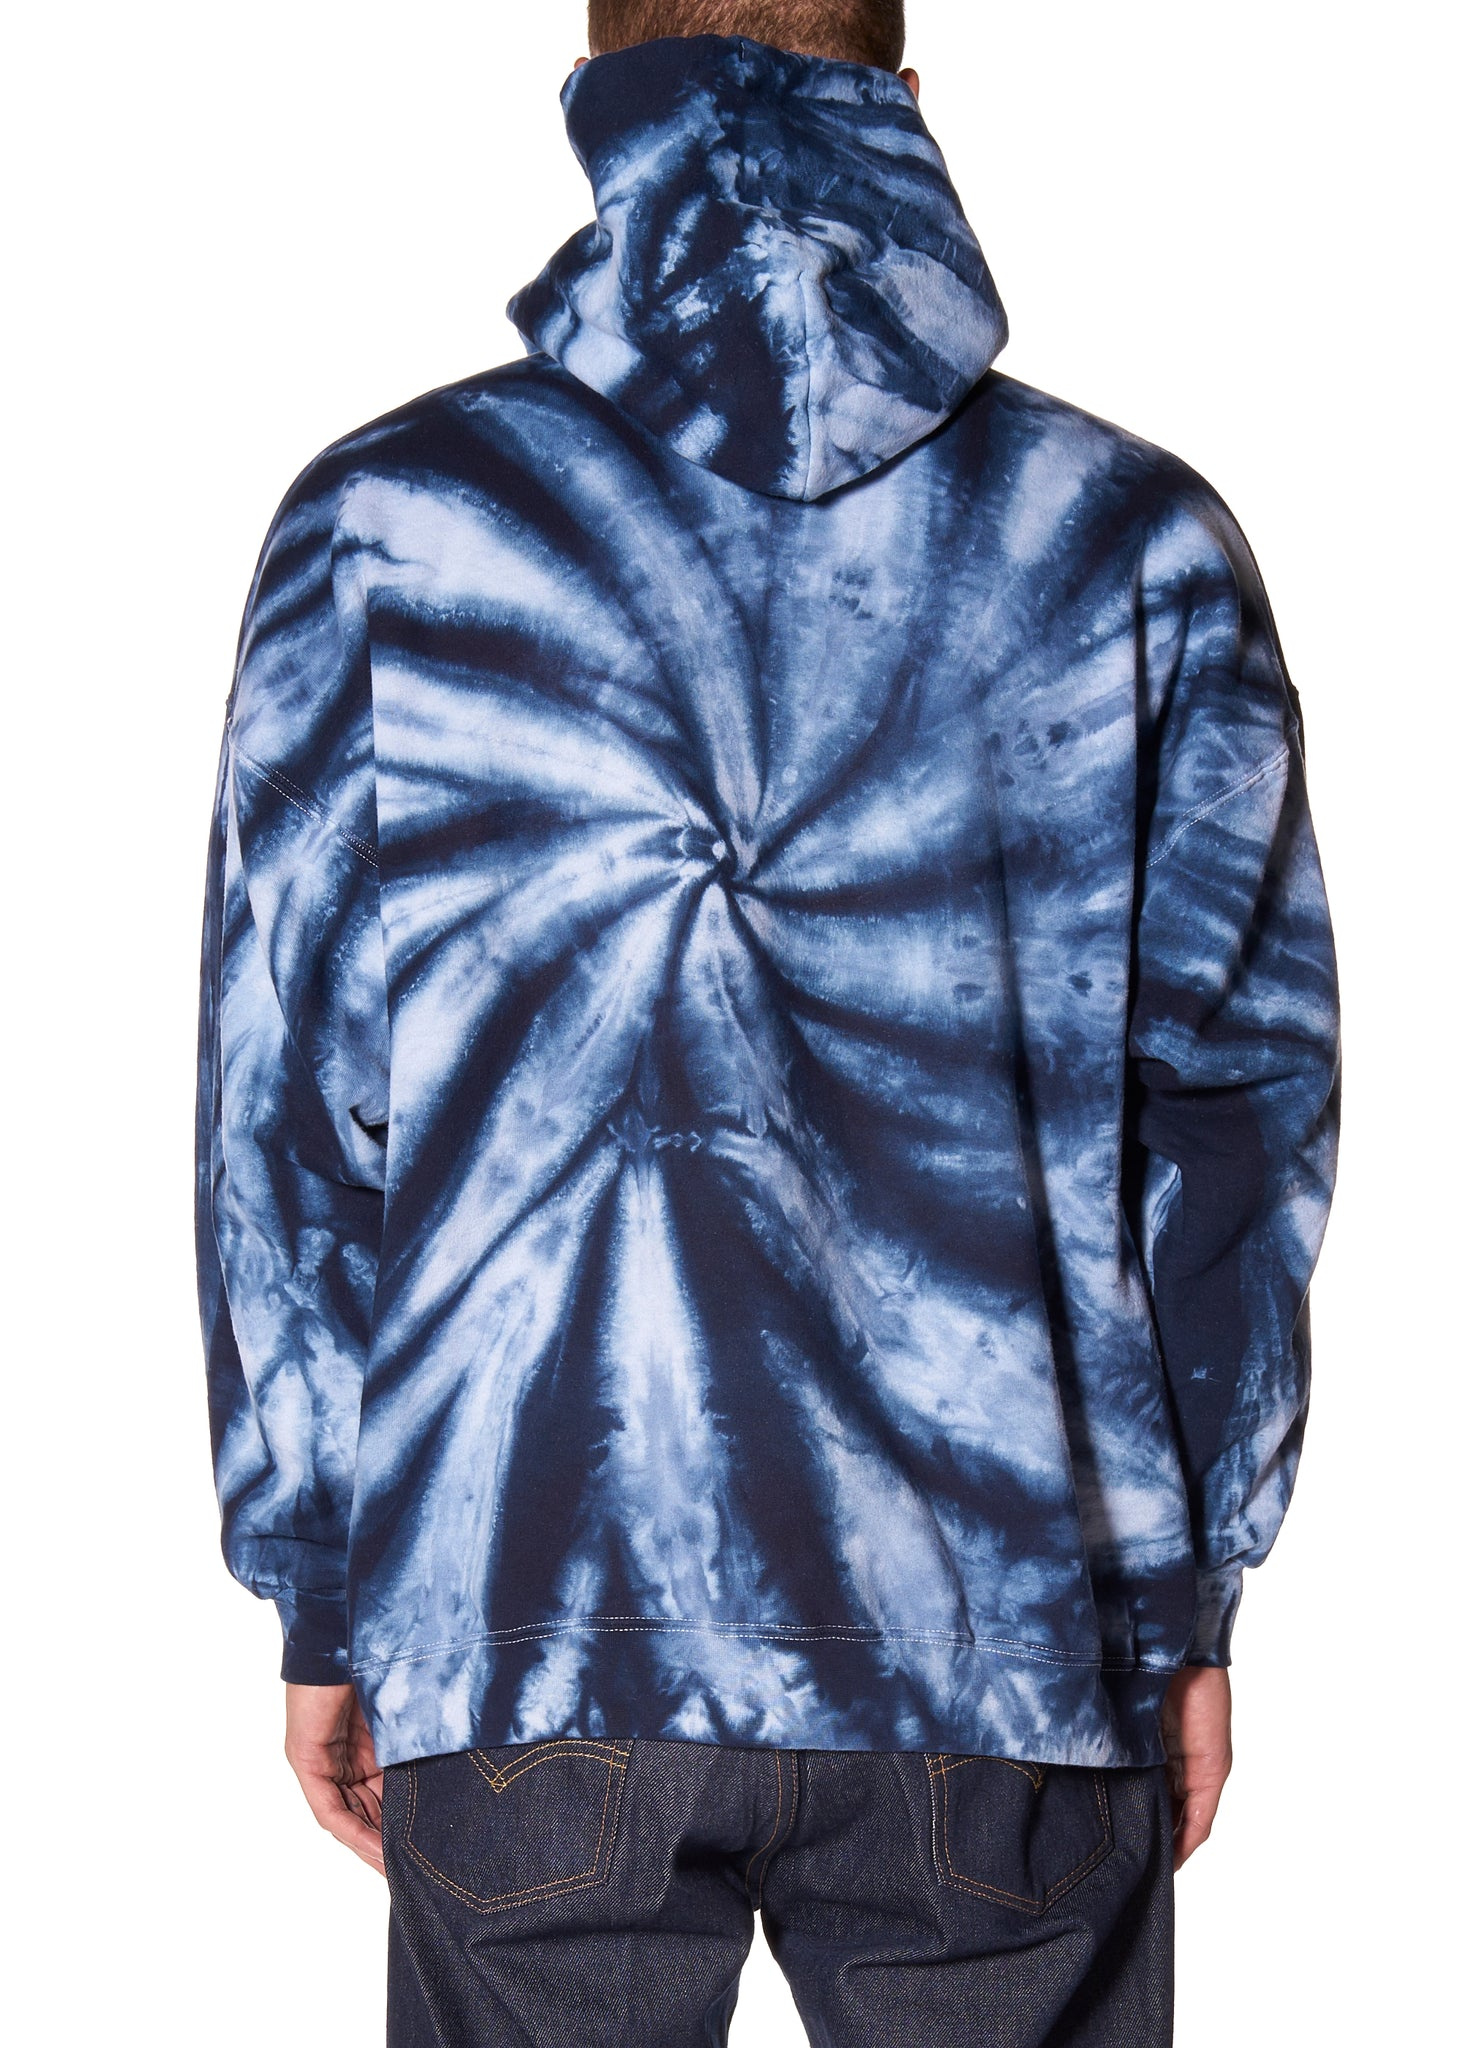 LIBERTINE LOGO TIE DYE HOODED SWEATSHIRT - Men's Tops - Libertine